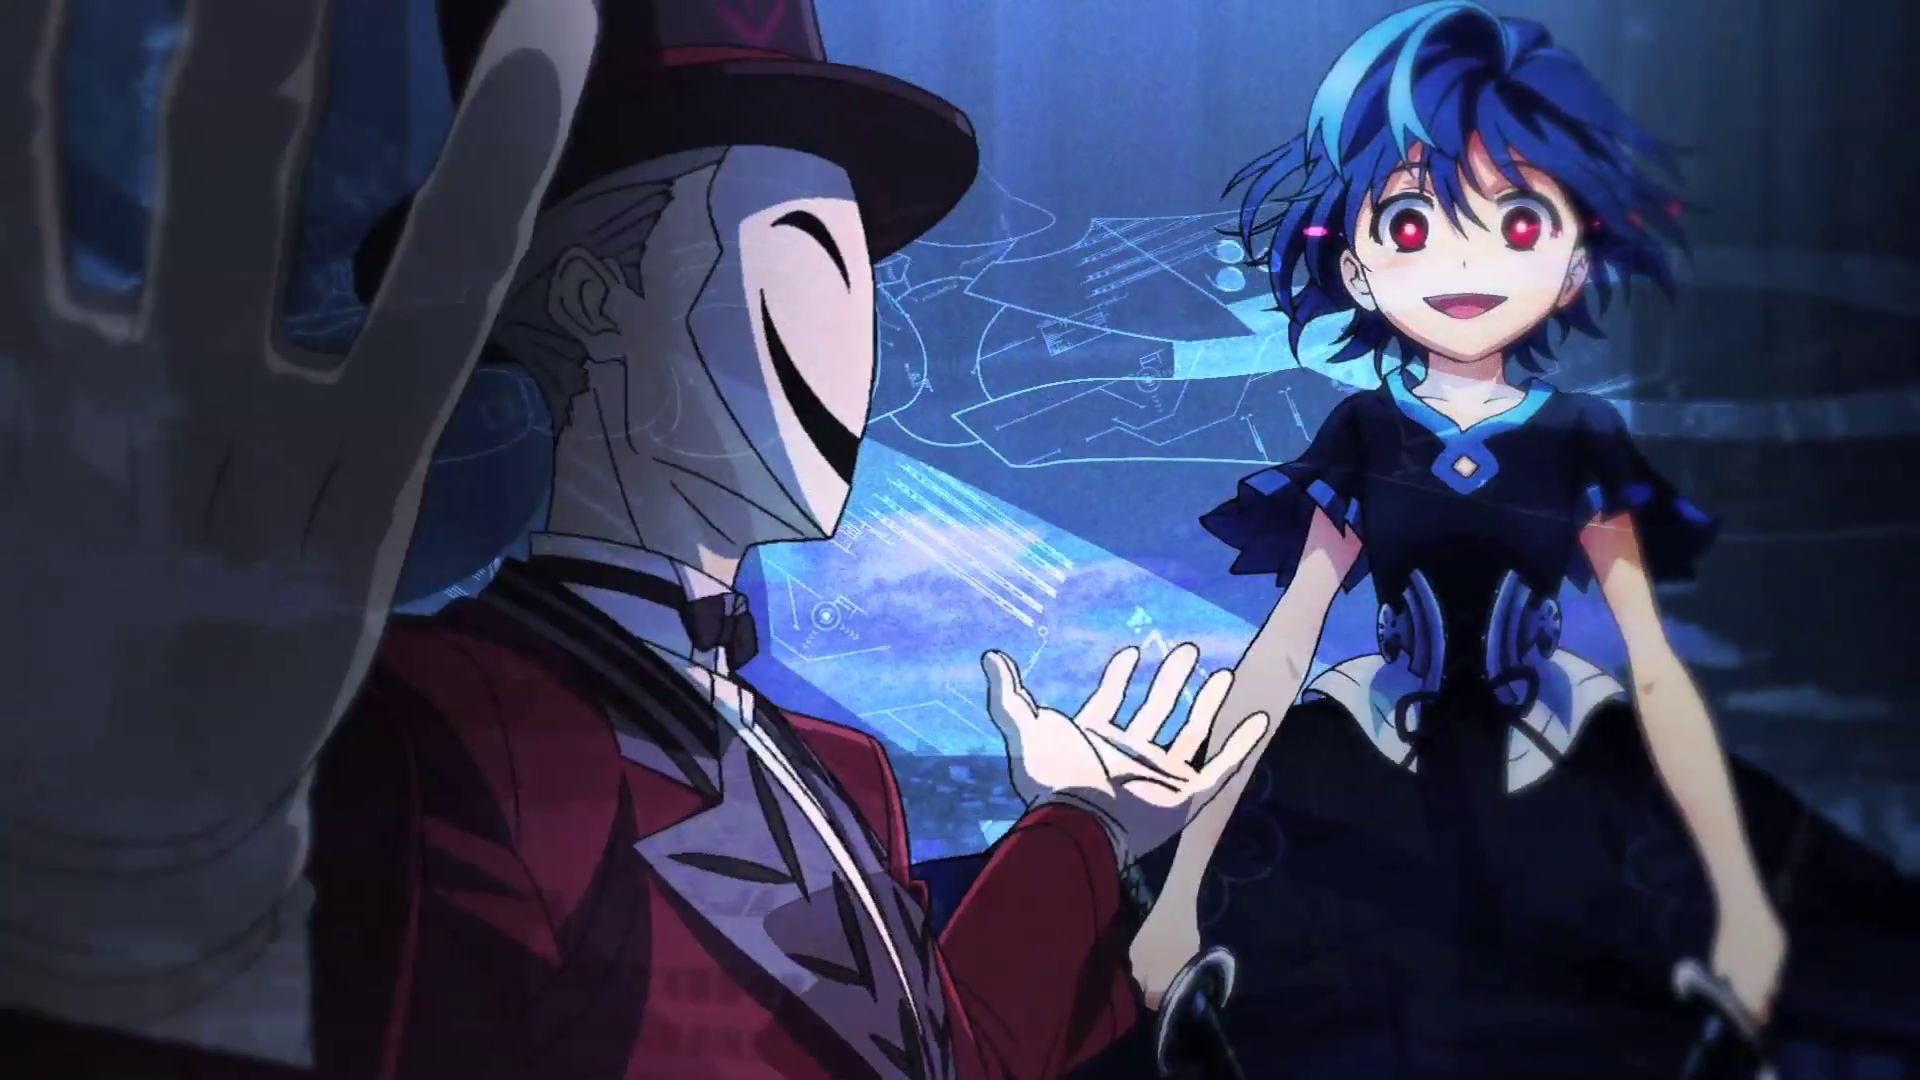 Black Bullet Episode 1 First Impressions   AnimeMagecom 1920x1080